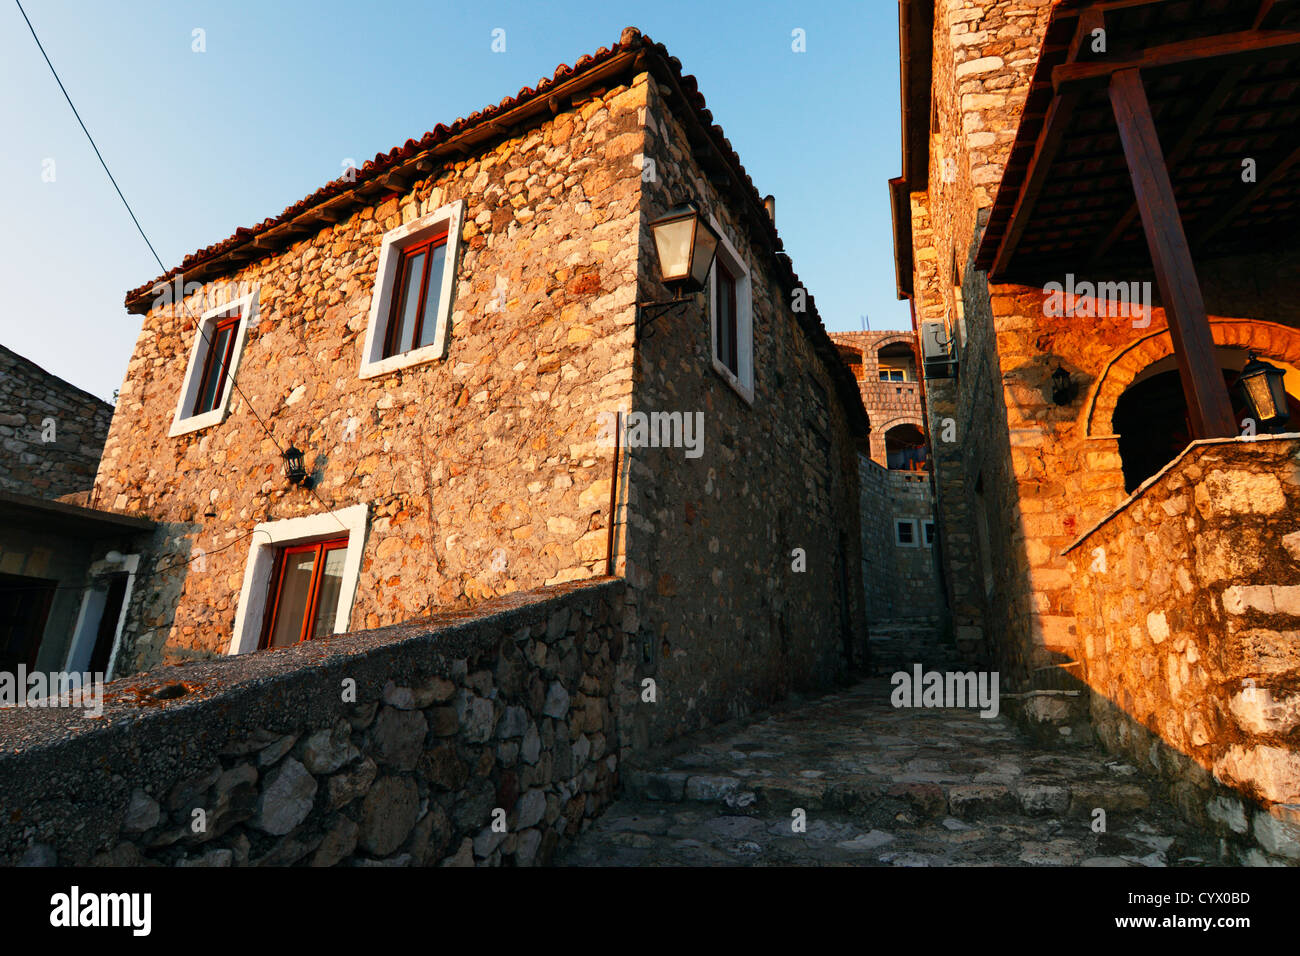 Old town of Ulcinj, the center of the Albanian community in Montenegro. Stock Photo